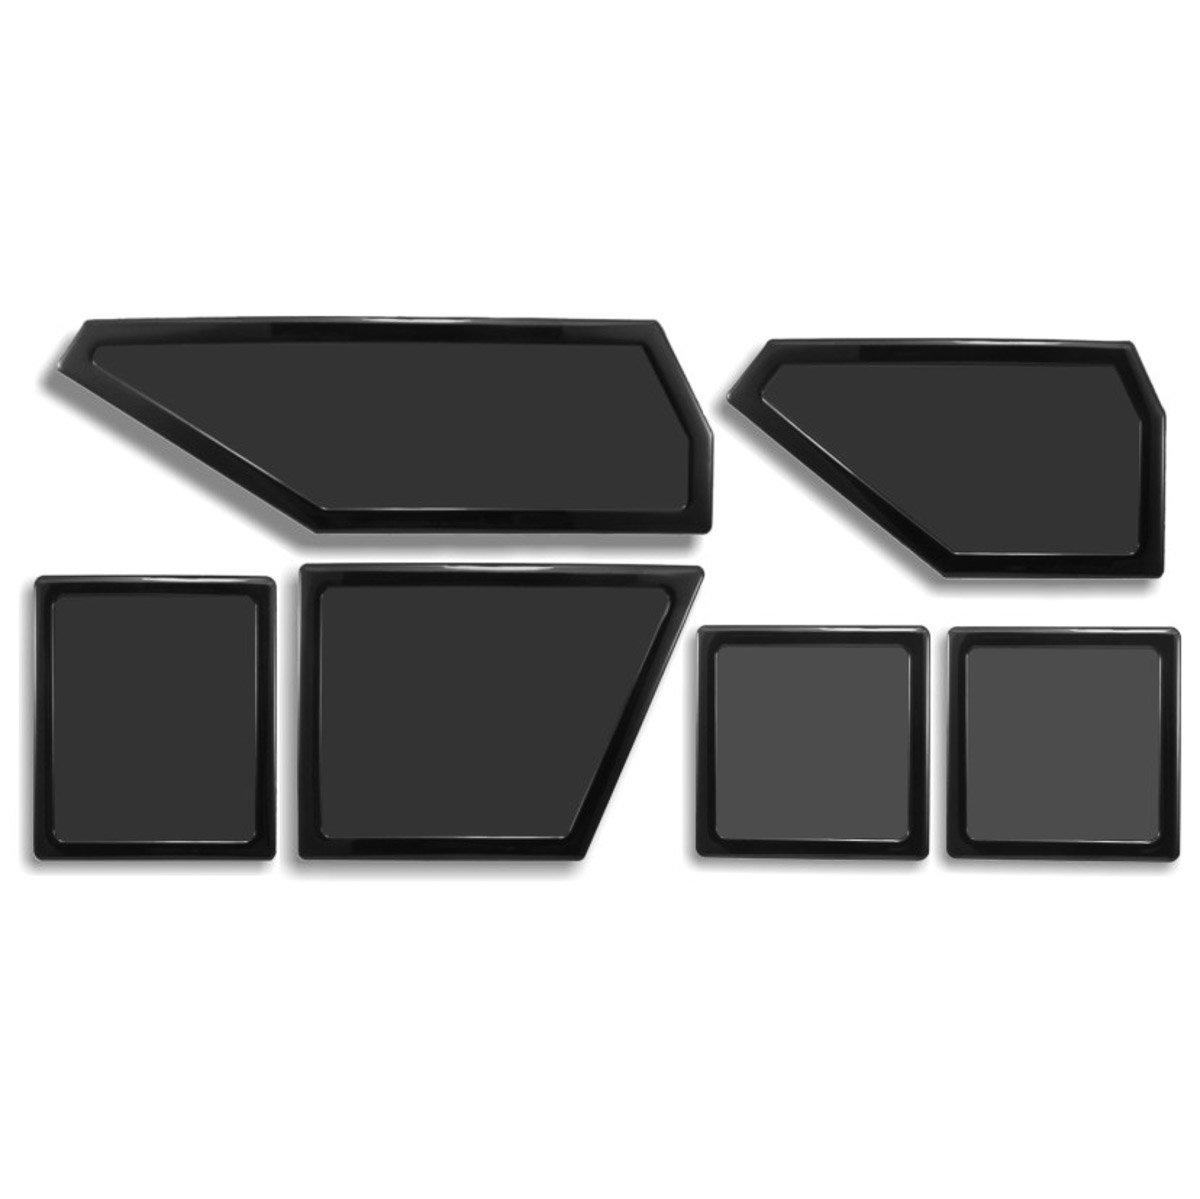 DEMCiflex NZXT Phantom 410 Magnetic Filter Set for PC Casing: Amazon.co.uk:  Computers & Accessories